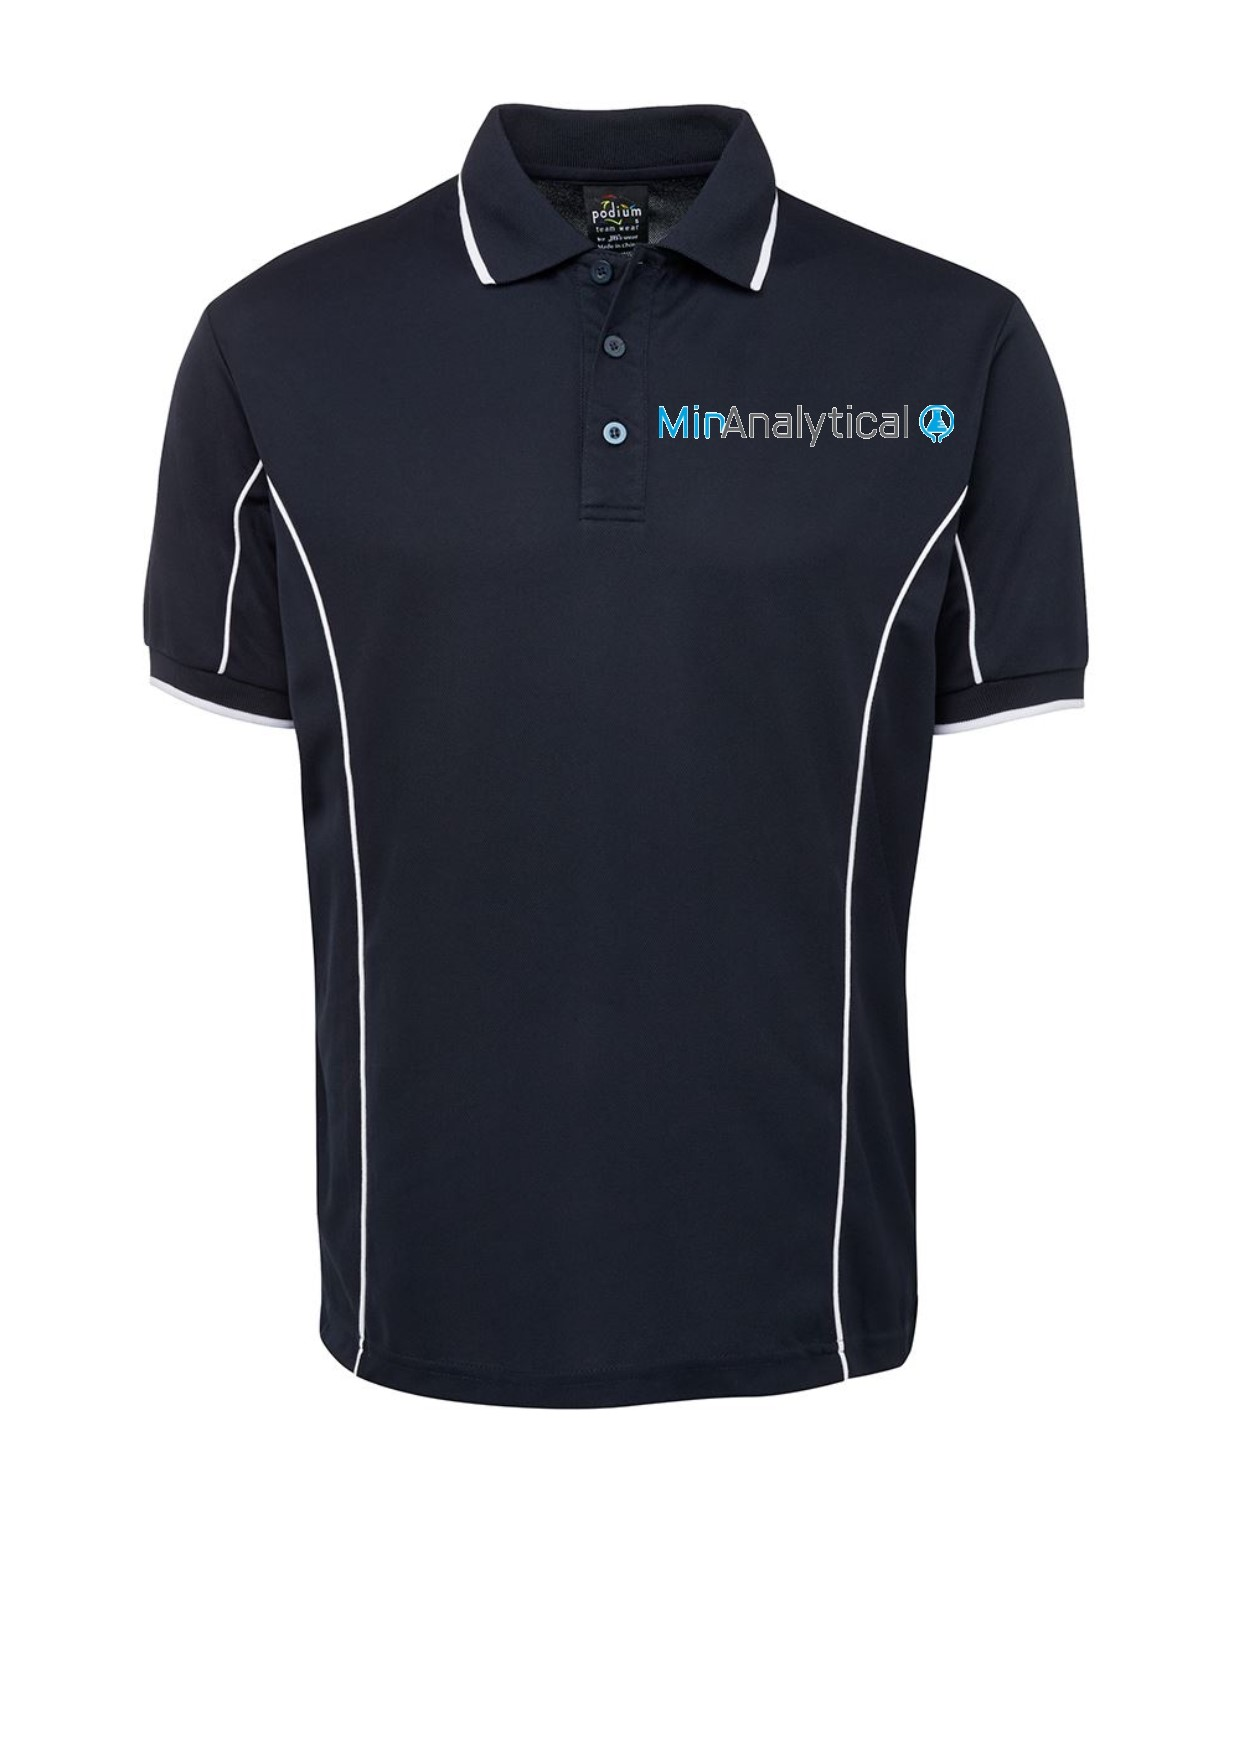 PODIUM POLO NAVY WHITE 2XL MINANALYTICAL LOGO